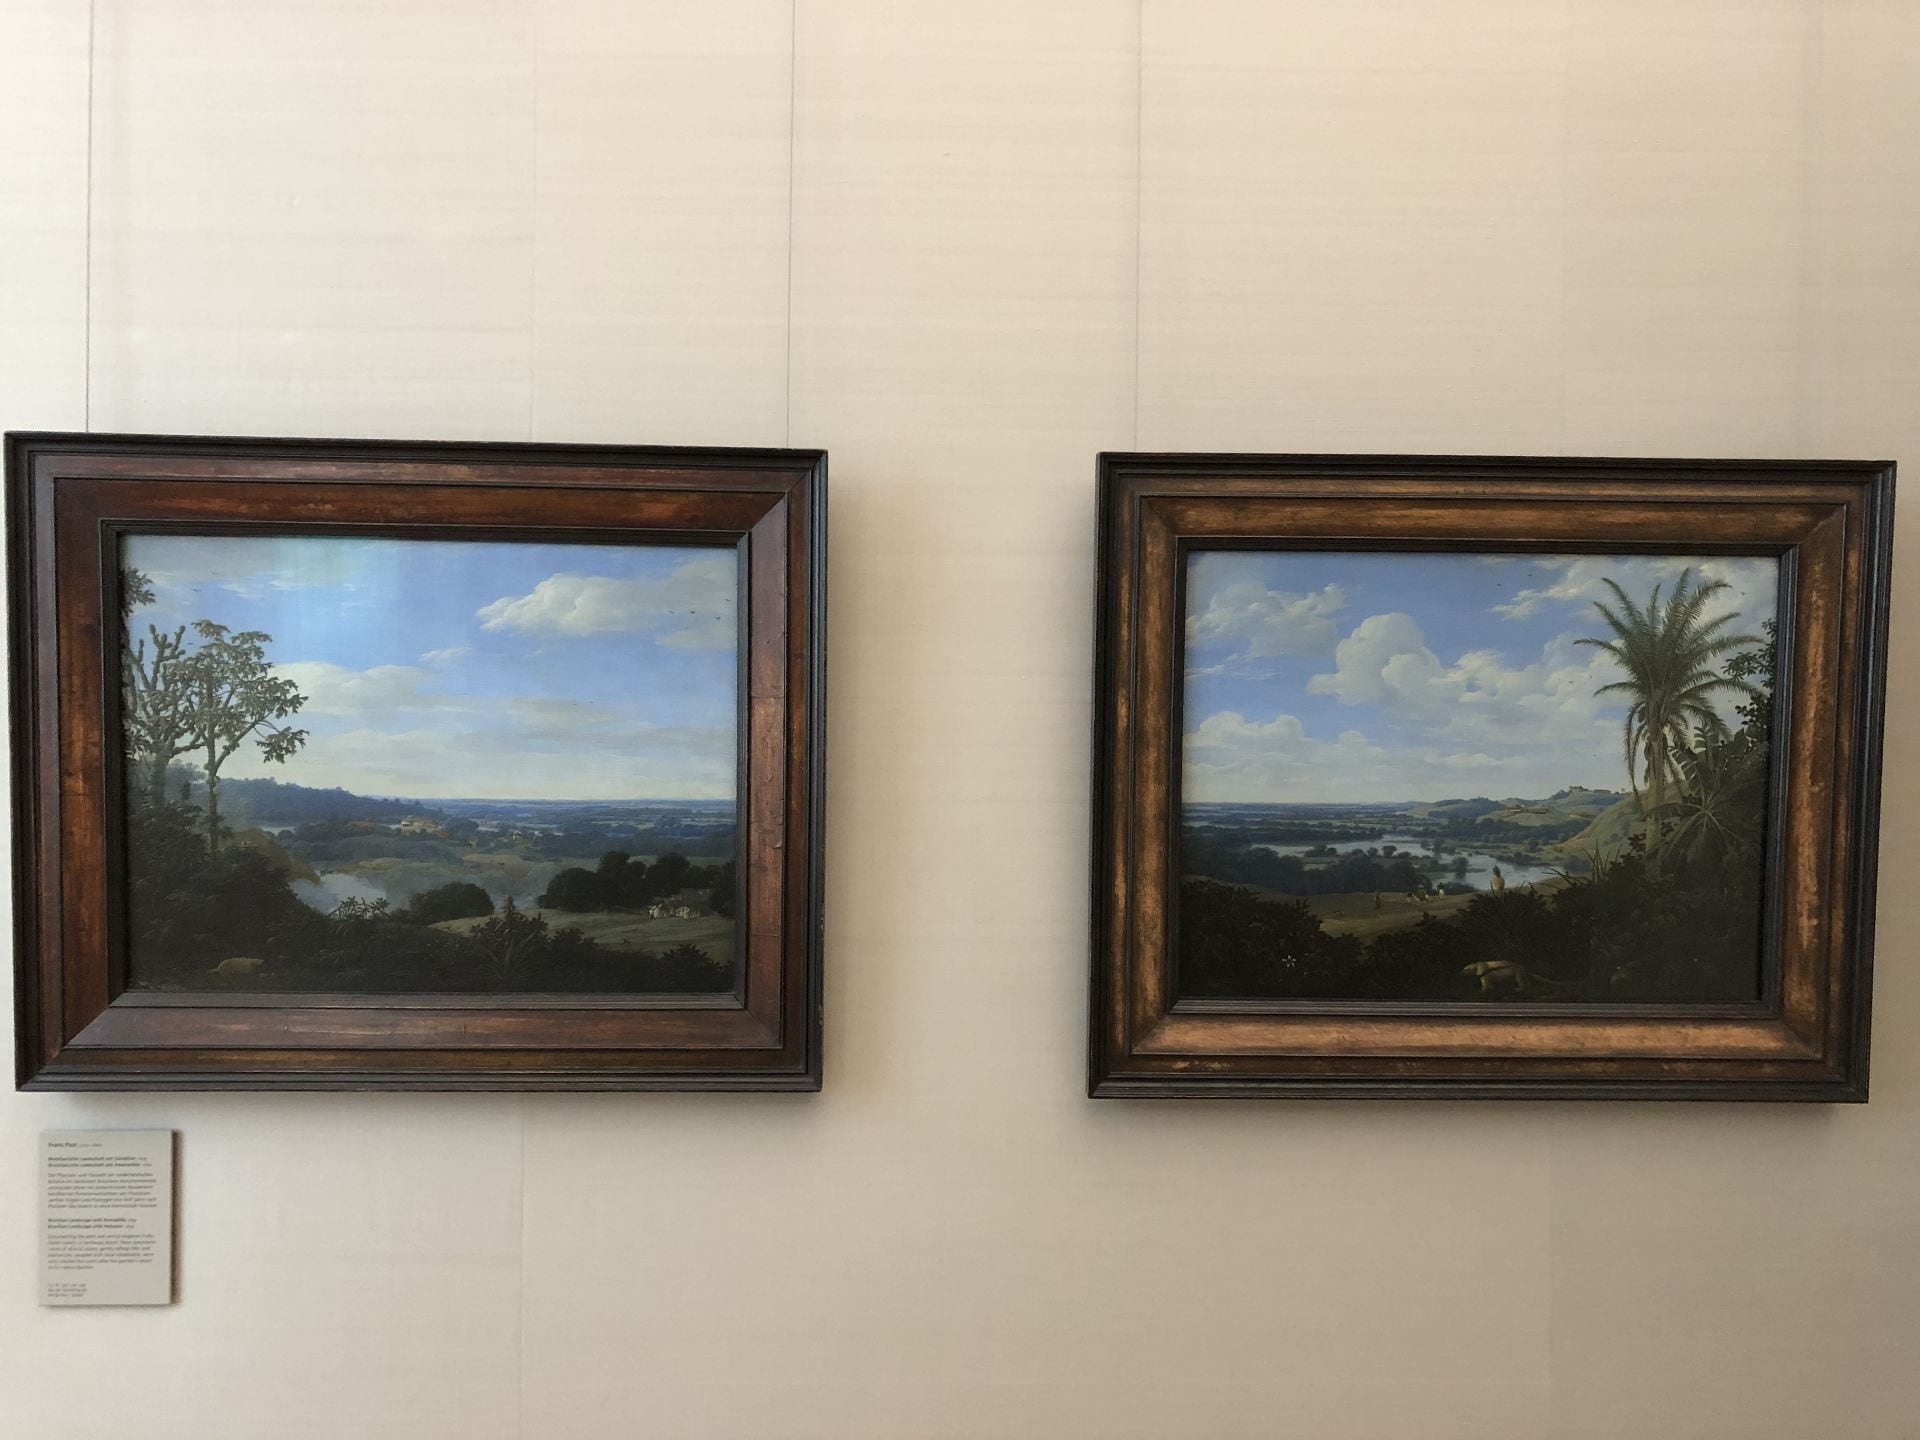 Two landscape paintings hang on a white wall. The landscapes are scenes of dark green jungles and golden pasture, with small figures interspersed.